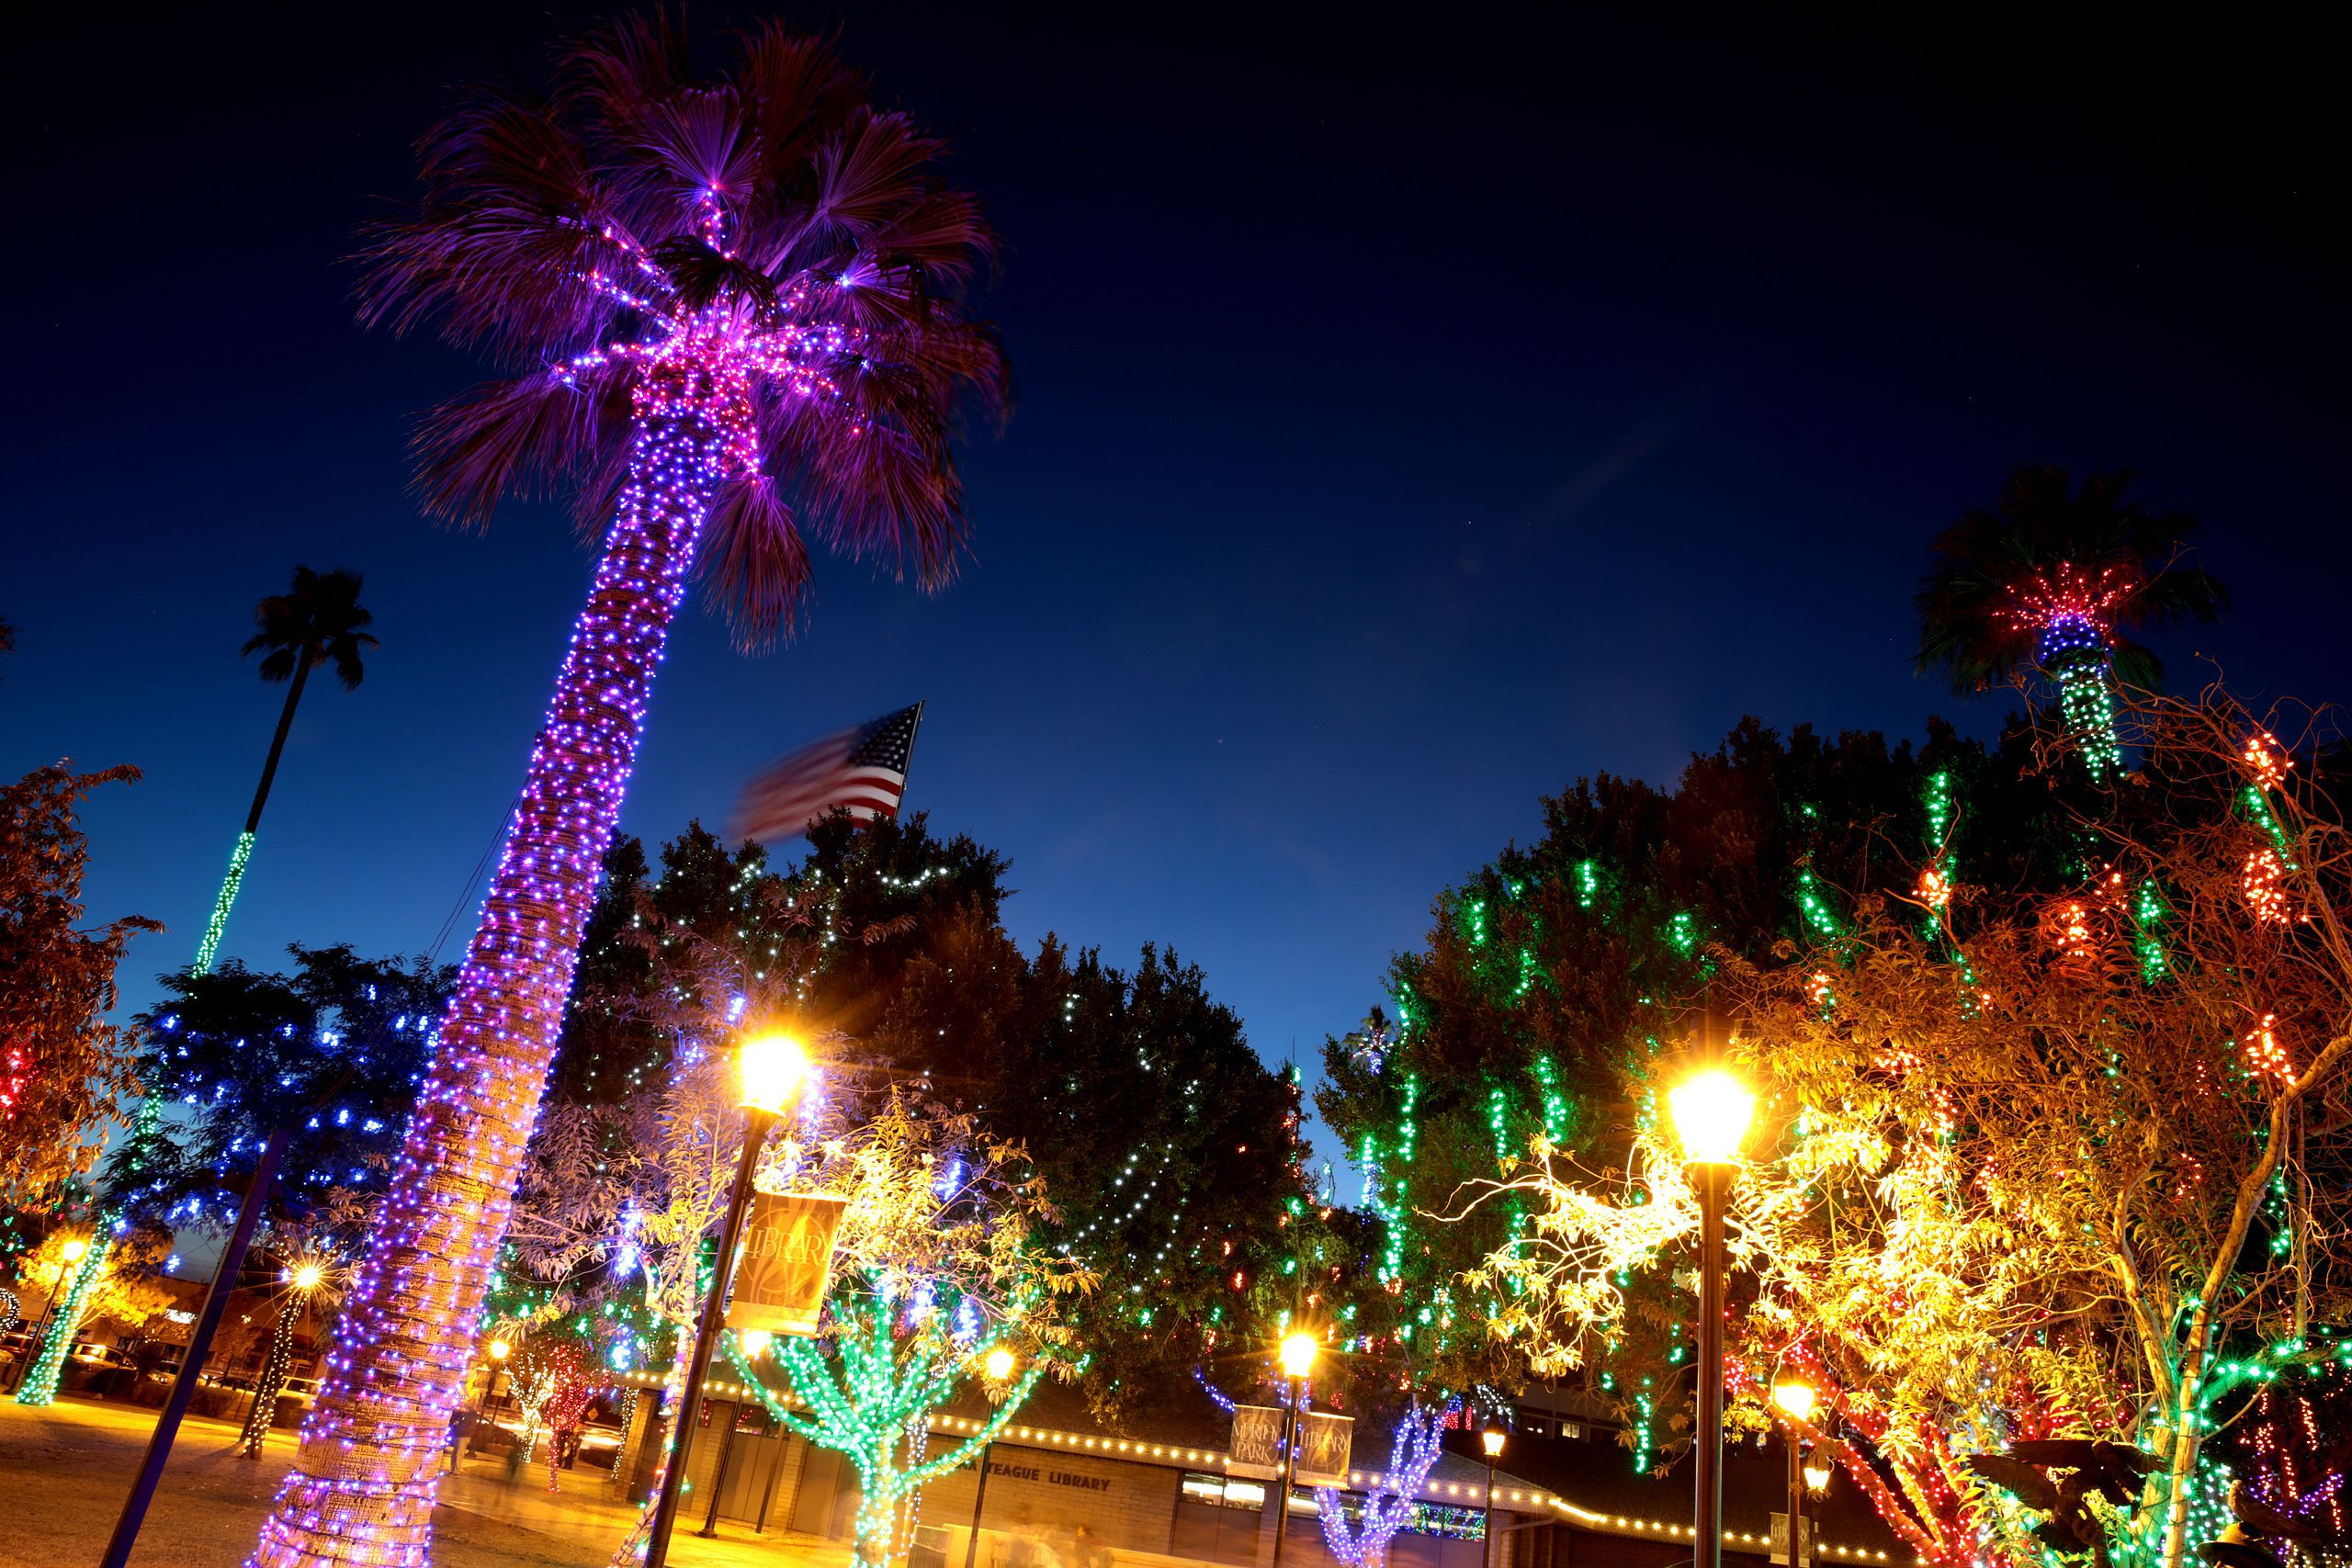 Glendale's Christmas in July